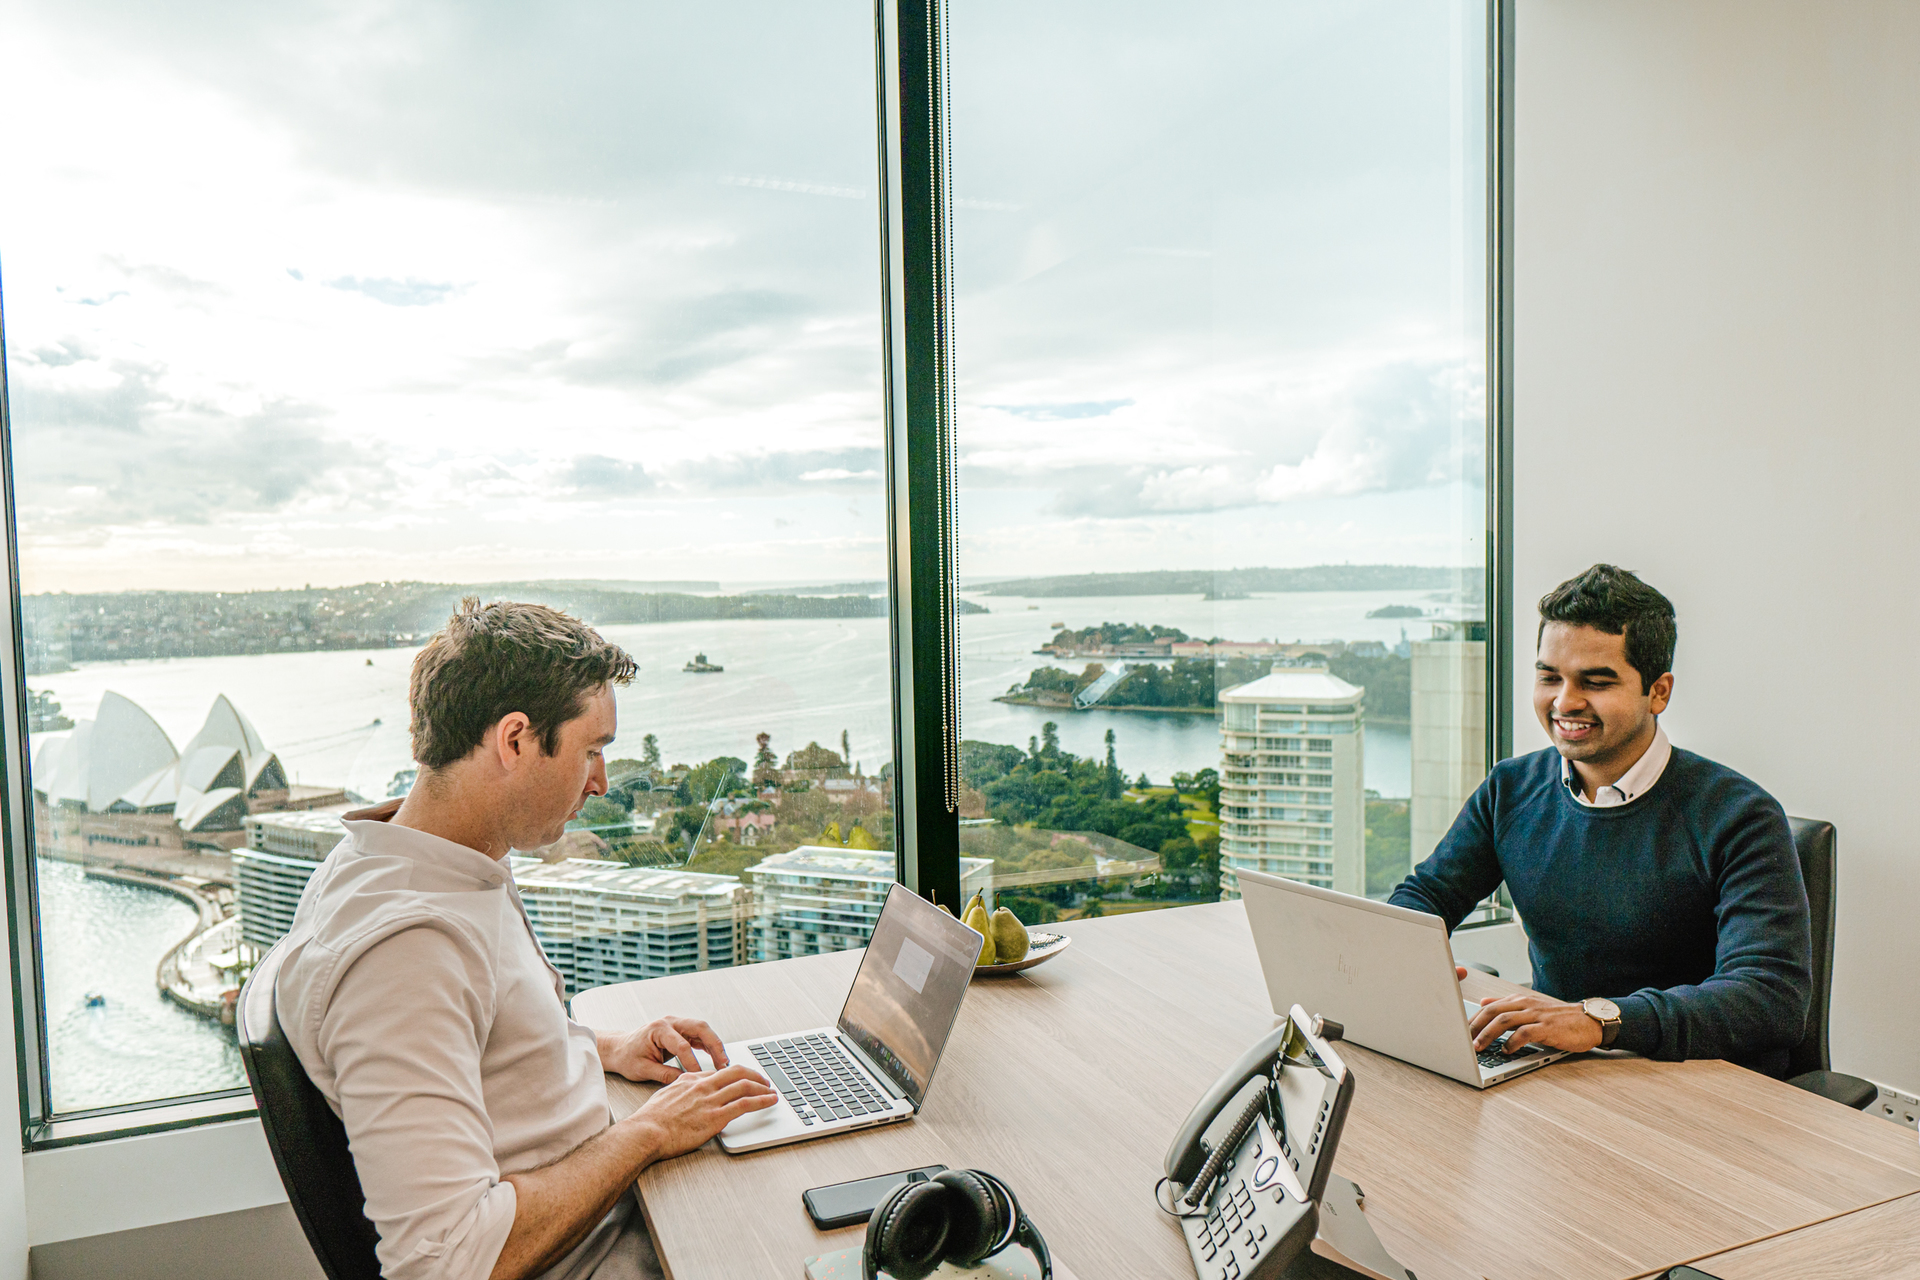 Private 5-person office with views boasting over Sydney's skyline